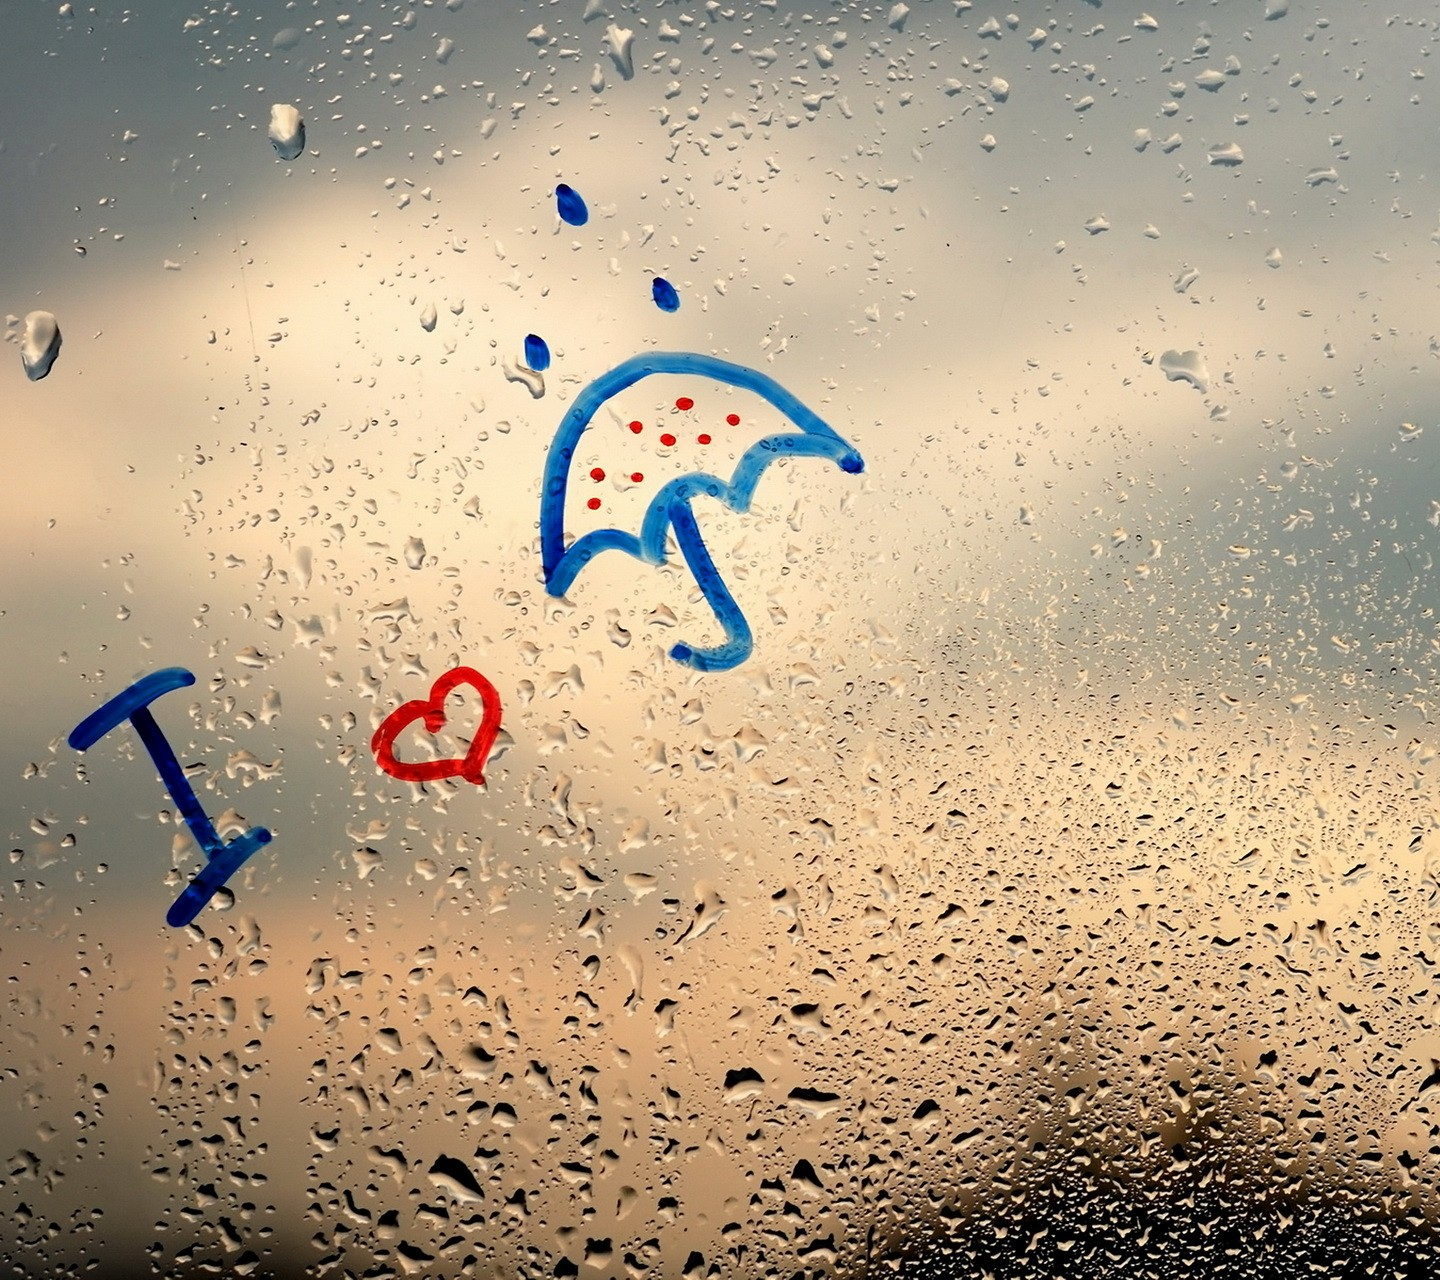 Love Wallpaper In Rain : I Love Rain, HD Artist, 4k Wallpapers, Images, Backgrounds, Photos and Pictures